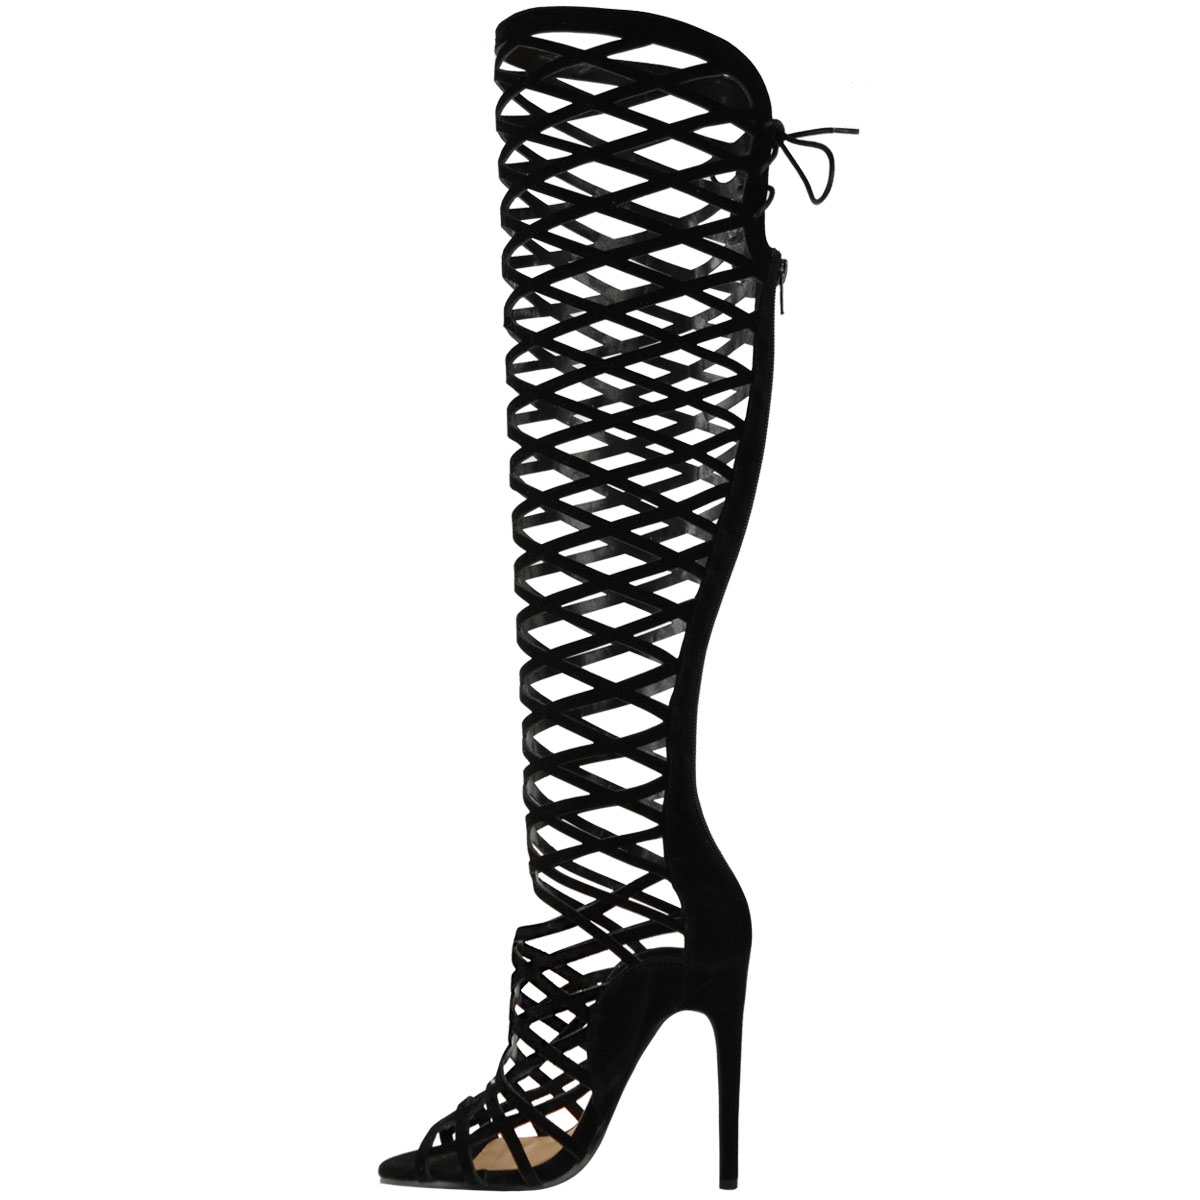 LADIES WOMENS CUT OUT LACE KNEE HIGH HEEL BOOTS GLADIATOR SANDALS ...